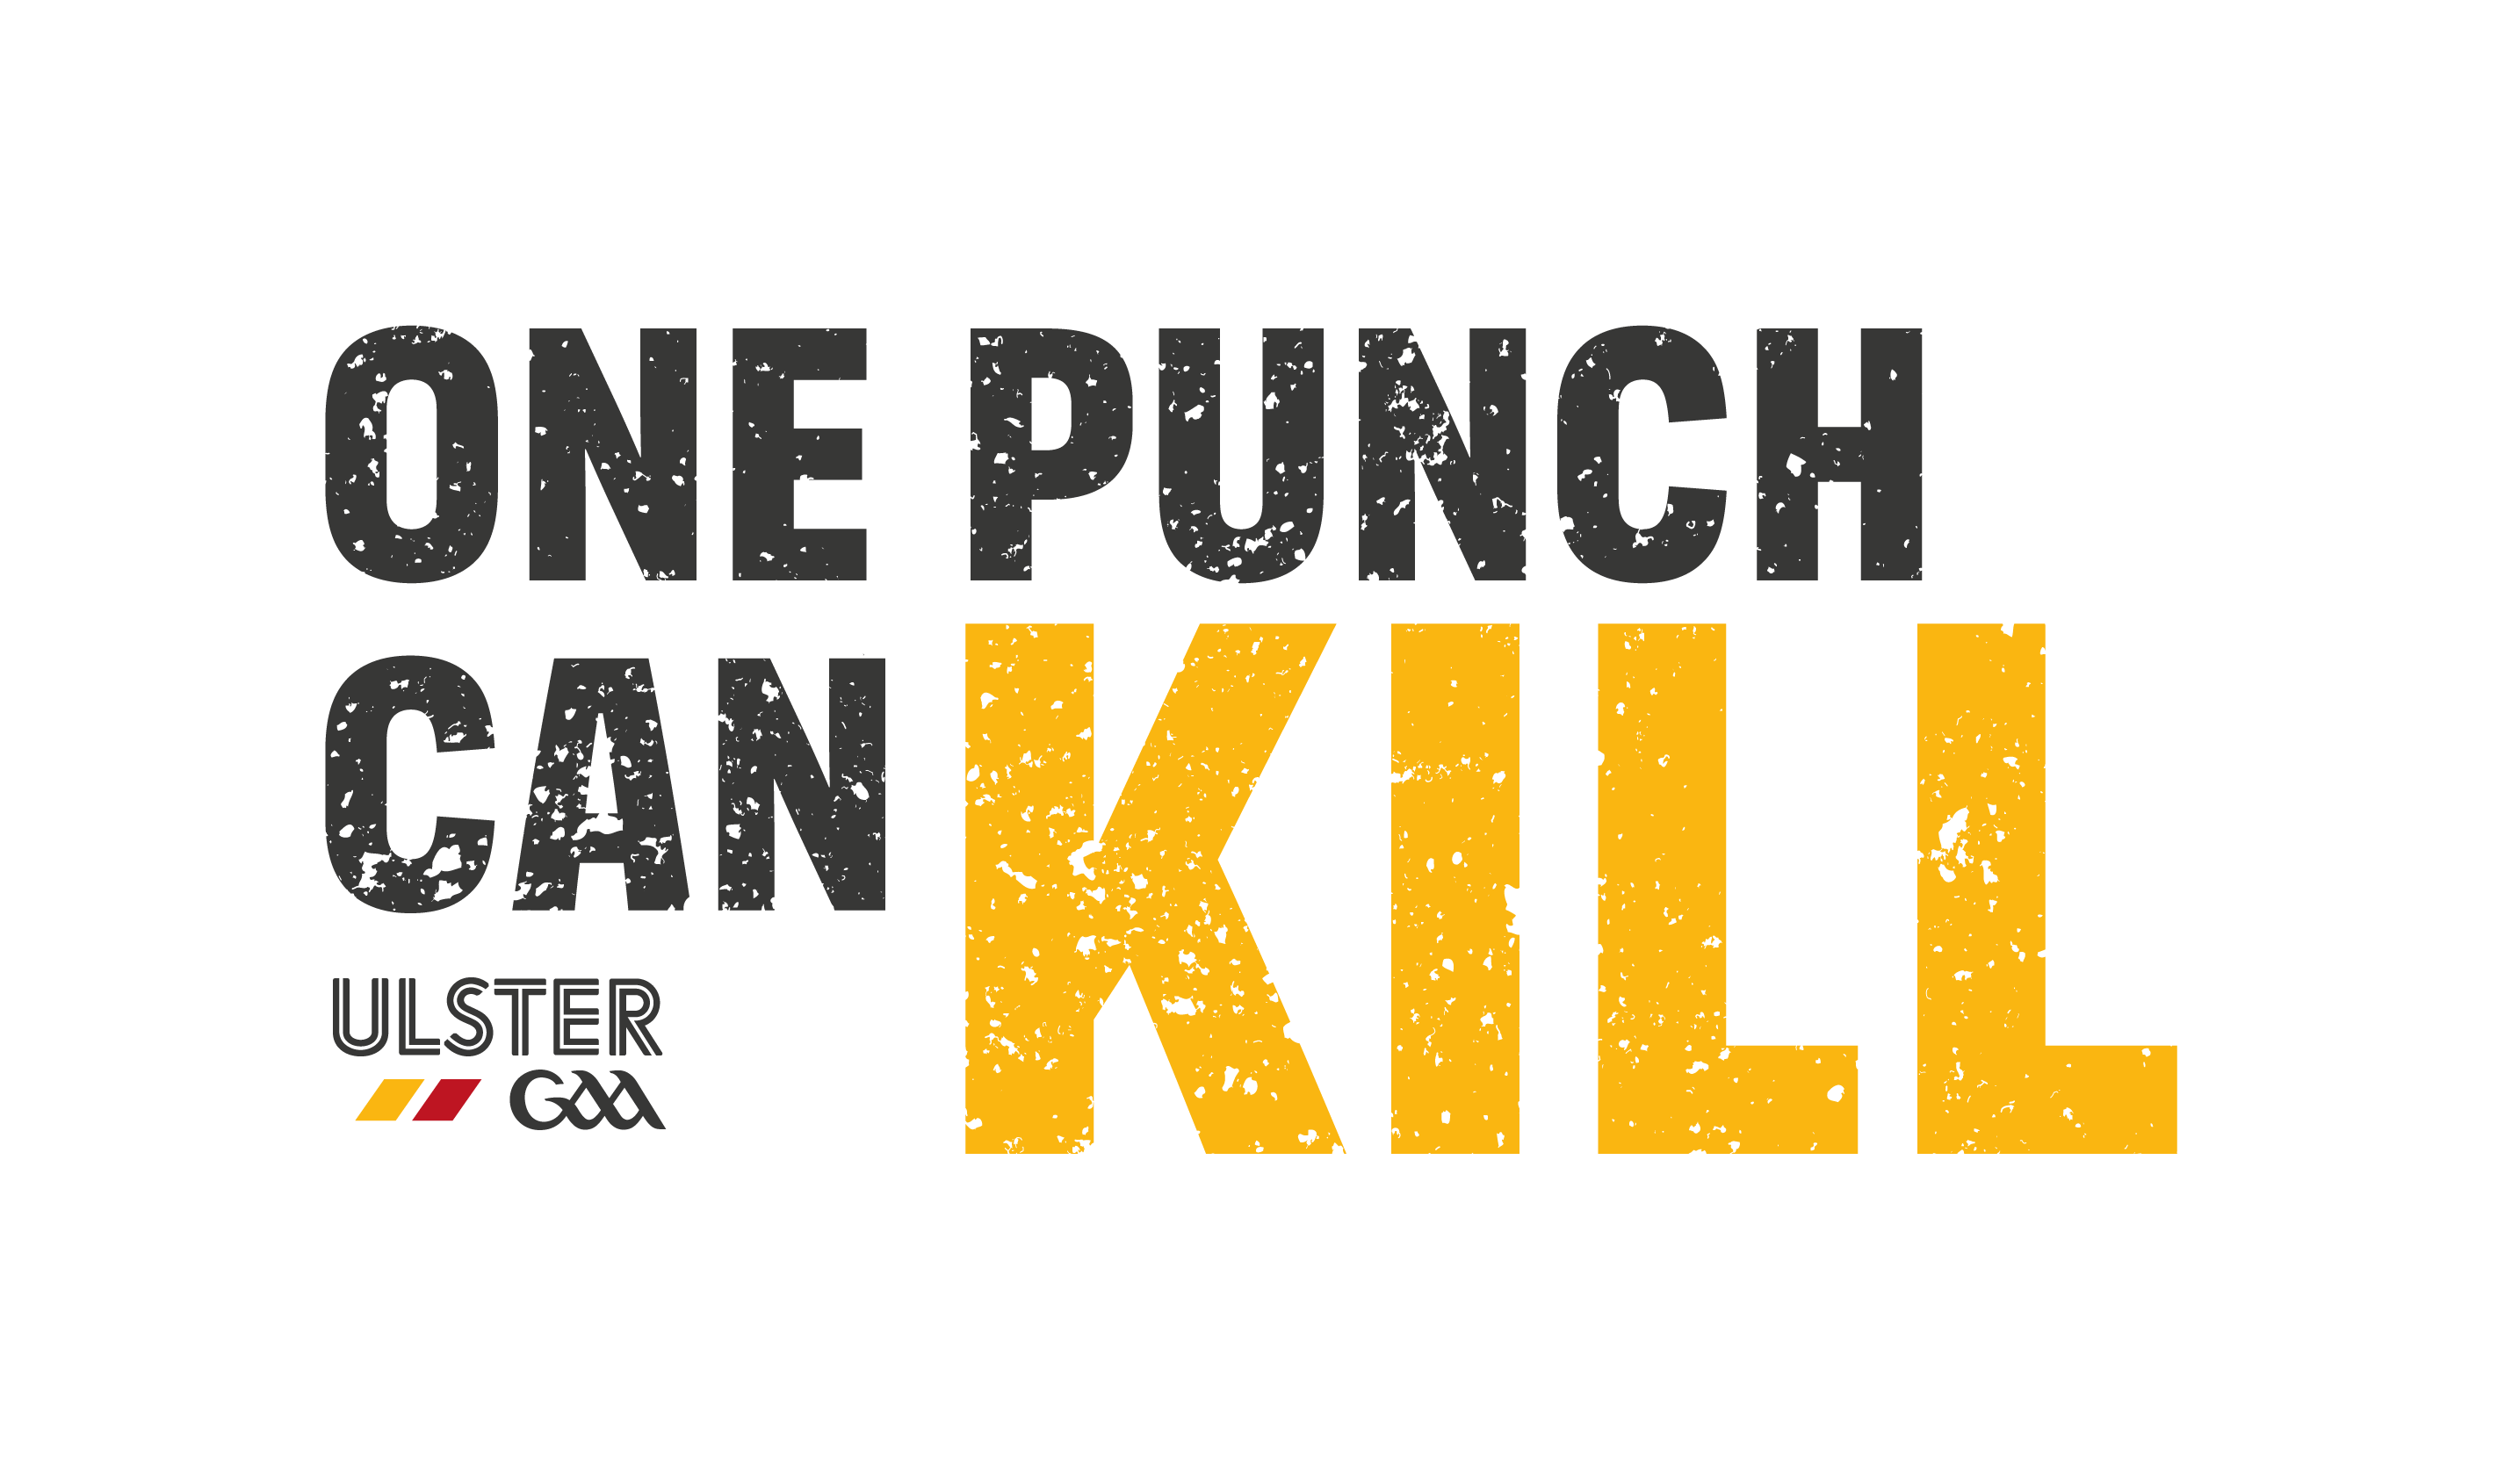 Ulster GAA link with An Garda Siochána and PSNI to highlight One Punch Can Kill scenarios